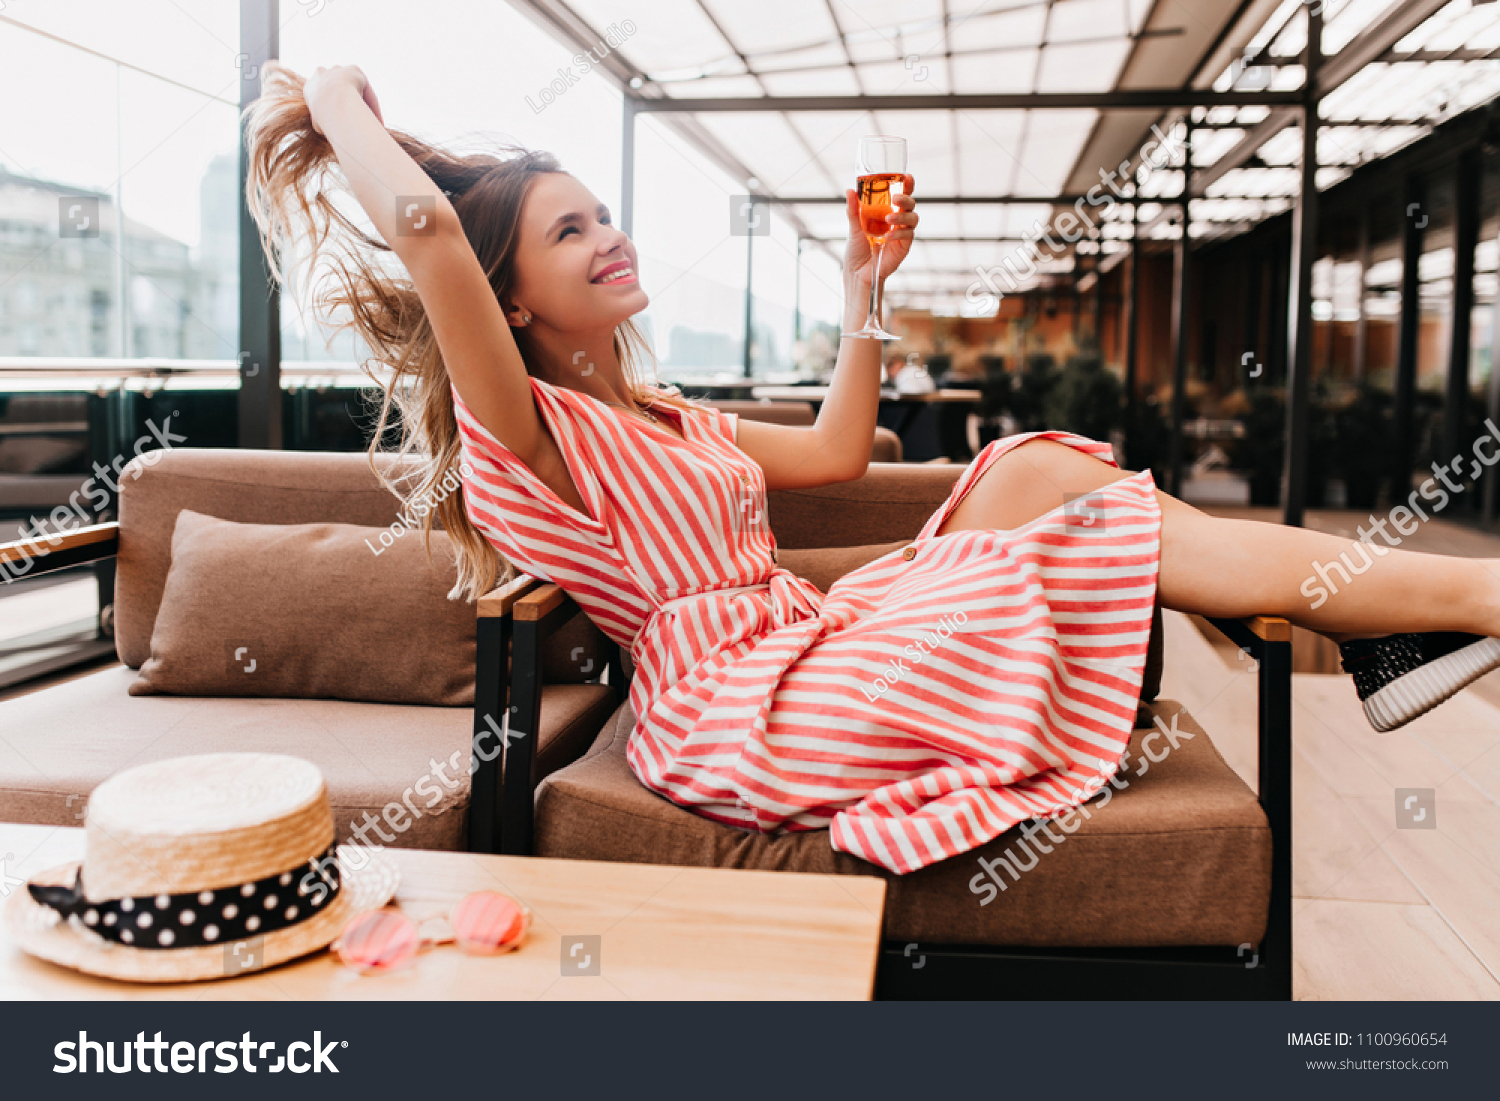 Ecstatic blonde girl playing with her hair while chilling in cafe. Inspired young woman in striped dress enjoying champagne in restaurant in summer weekend. #1100960654